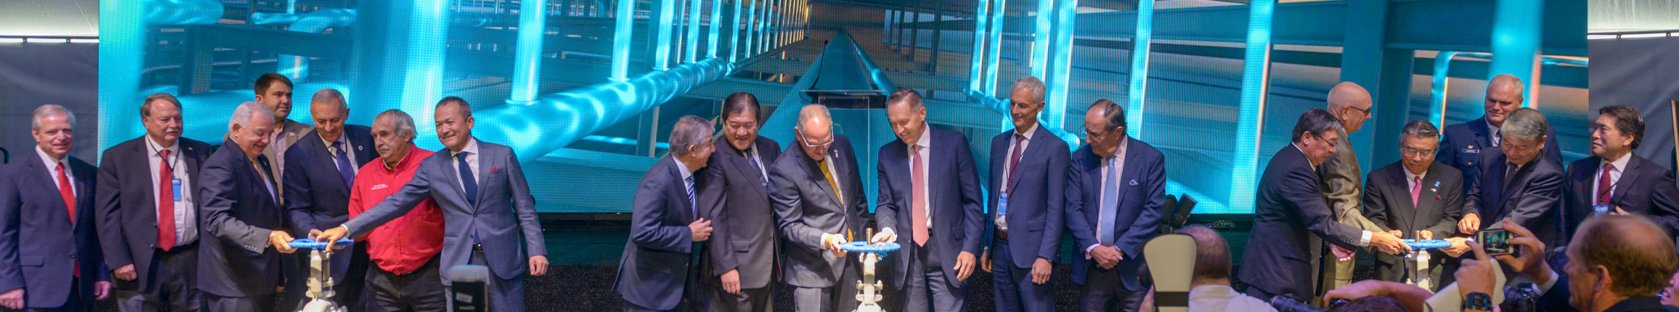 Cameron LNG Celebrates Commercial Operations With Dedication Ceremony